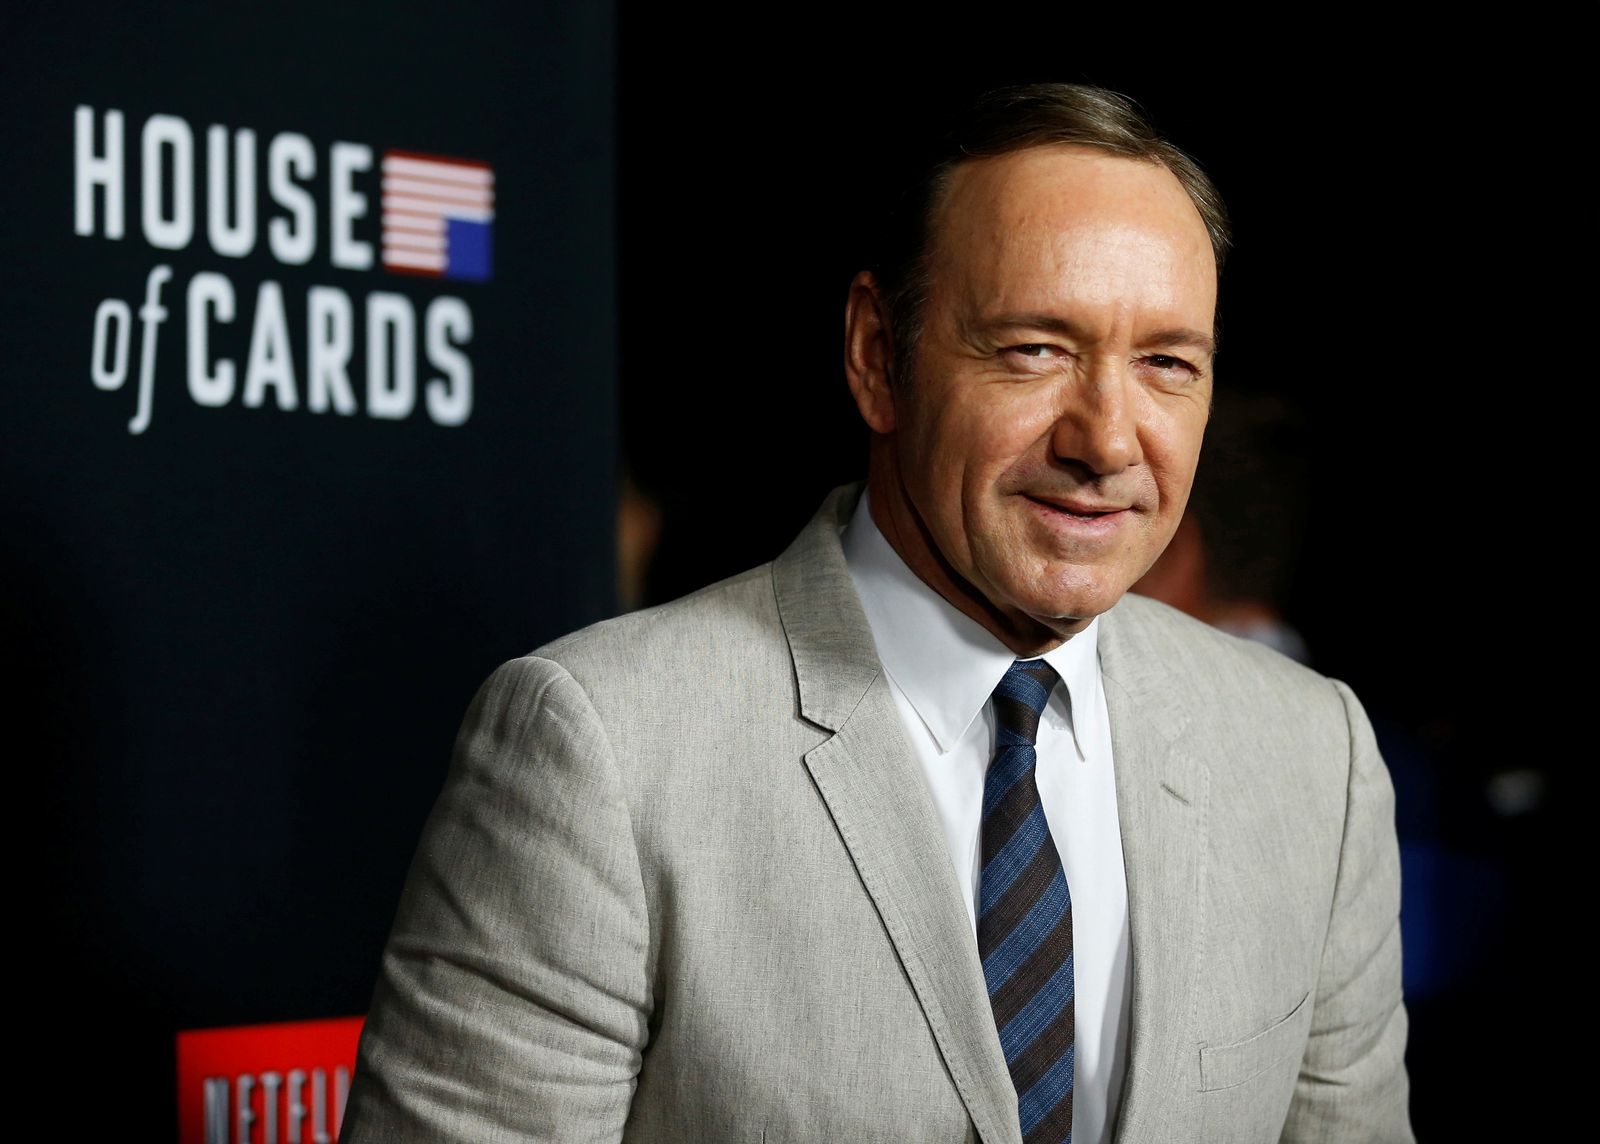 PEOPLE-KEVINSPACEY/NETFLIX